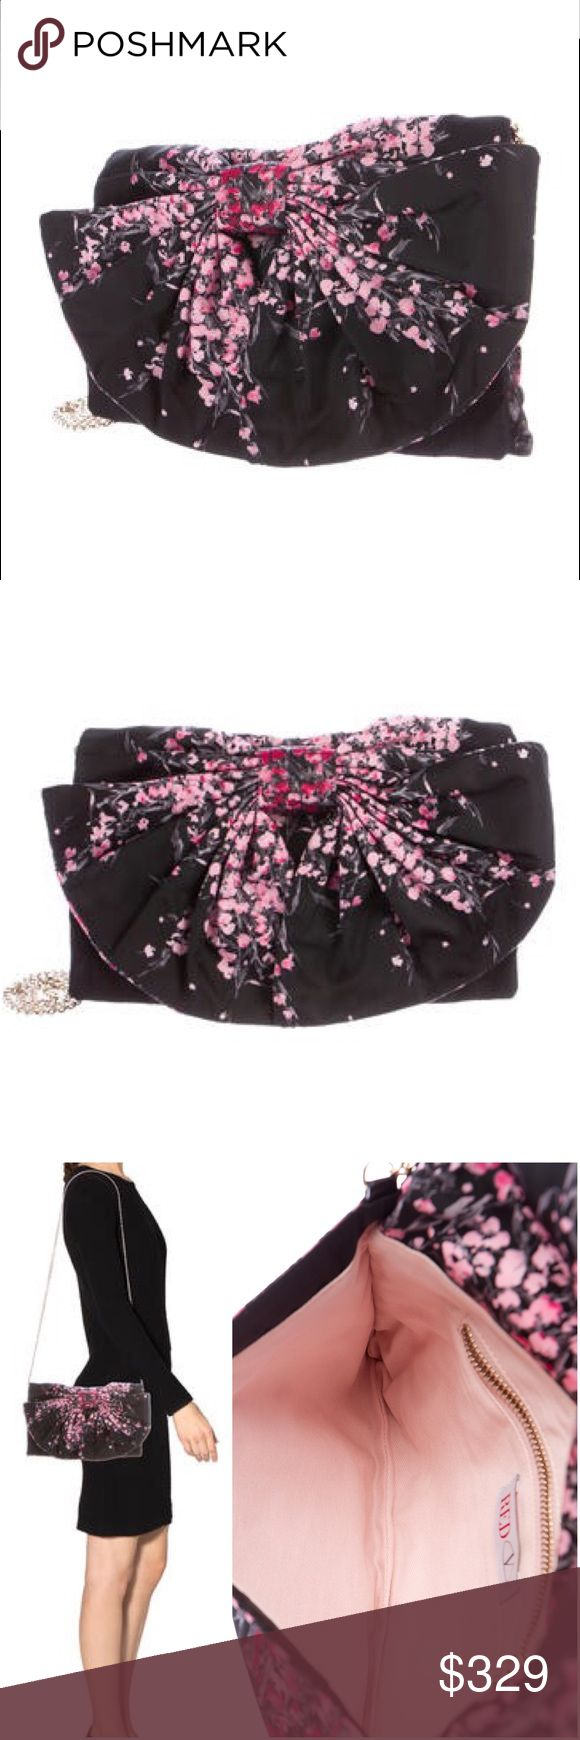 """💞Authentic Red Valentino Bow  floral printed bag❣ Black and pink floral printed woven Red Valentino crossbody bag with gold-tone hardware, single chain-link shoulder strap, large bow accent at flap, pink canvas lining, single interior zip pocket and magnetic snap closure at front flap. Includes dust bag.  Shoulder Strap Drop: 20"""" Height: 7.5"""" Width: 11"""" Depth: 0.5"""" NWOT - perfect fun and feminine bag! RED Valentino Bags"""